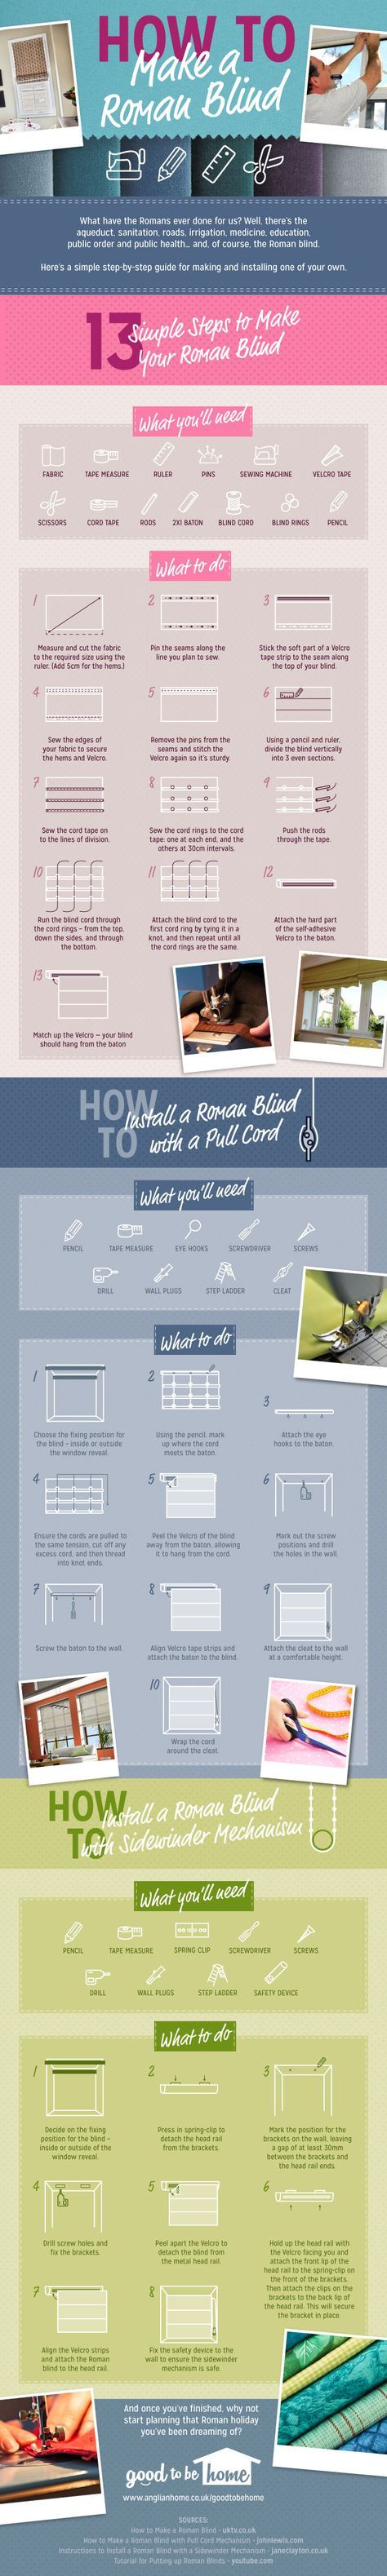 Here's an easy step-by-step Roman blind tutorial. It was created by Good to …